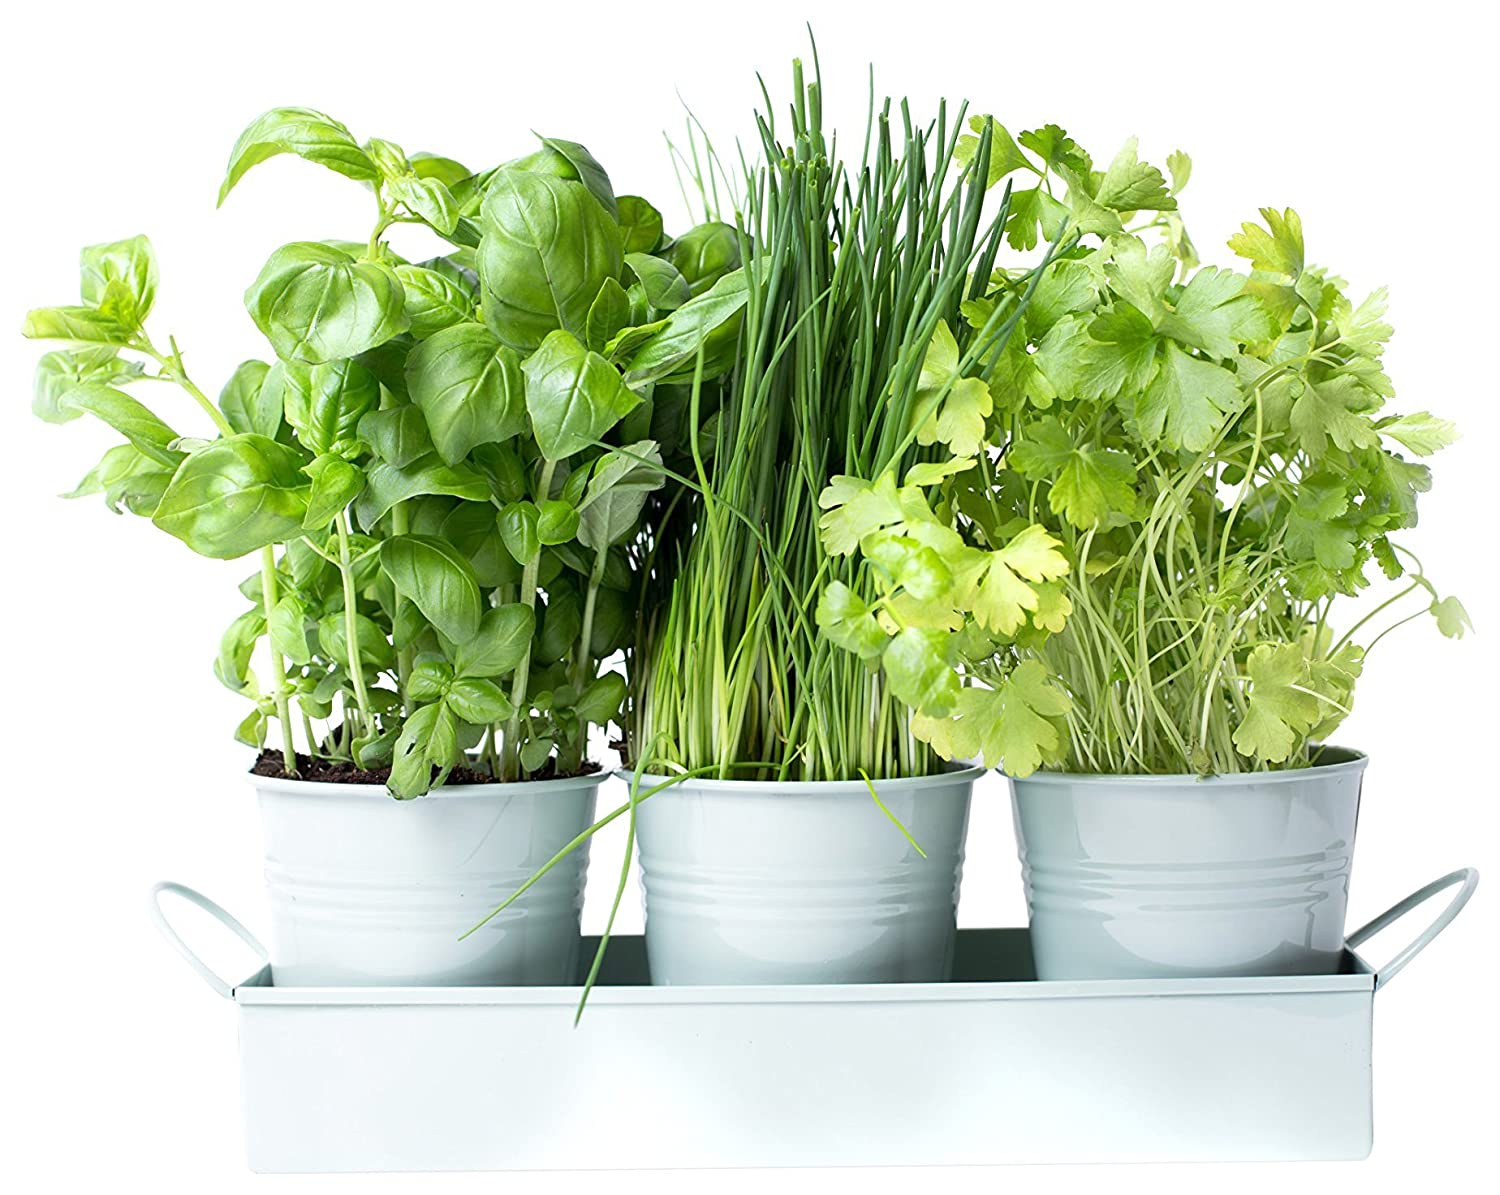 dill and mint Herb pots on a tray - great for growing herbs or flowers at home on your windowsill (Sea Green)